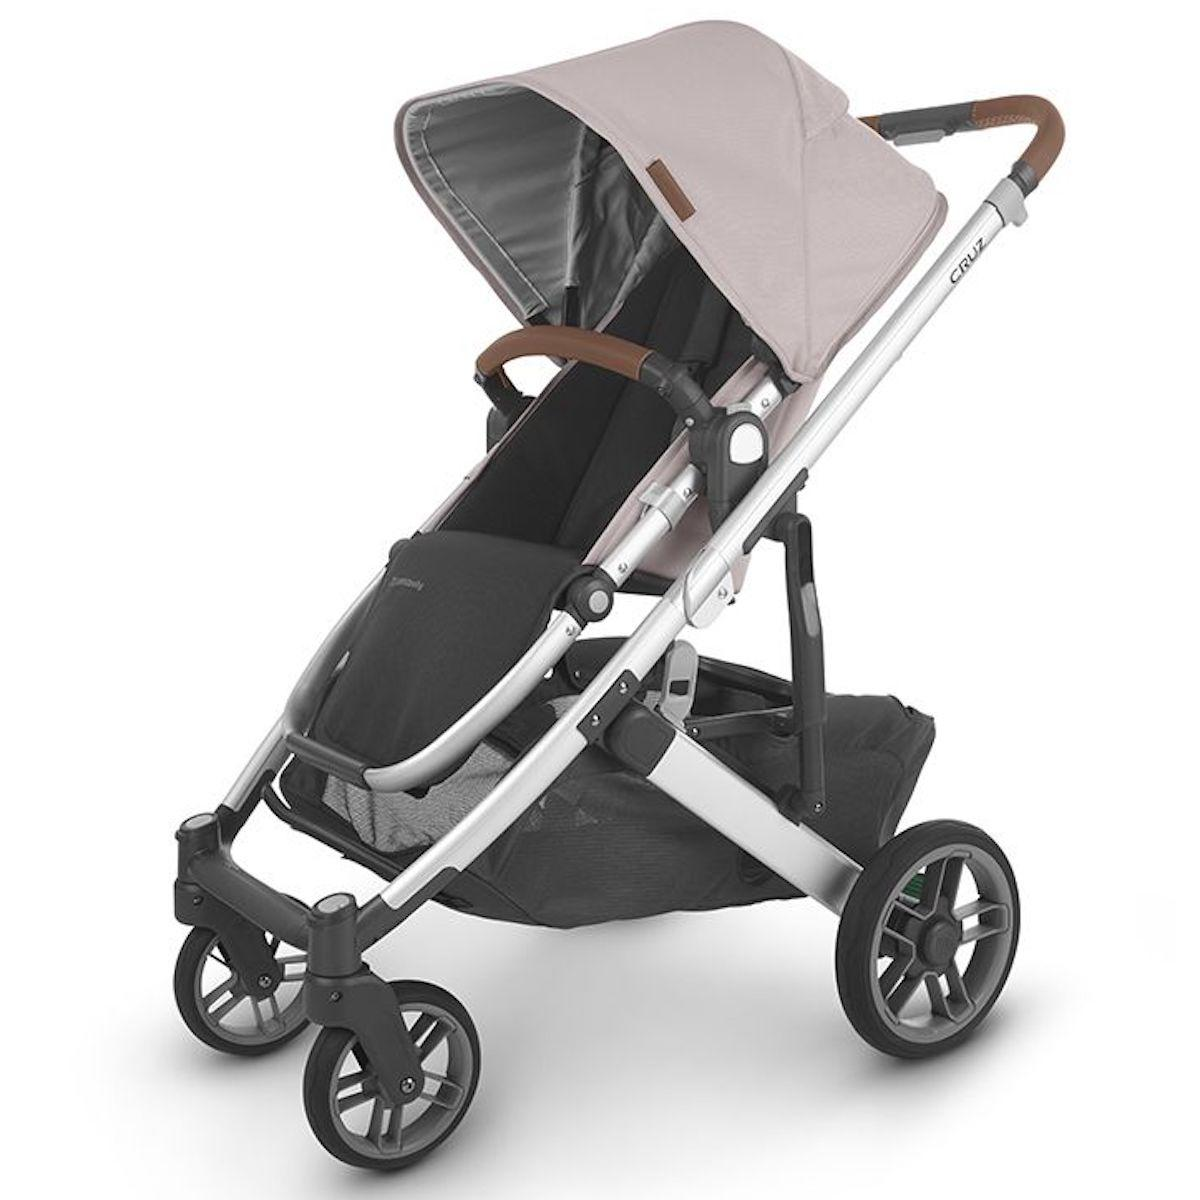 Poussette CRUZ V2 Uppababy Alice dusty pink-silver-saddle leather